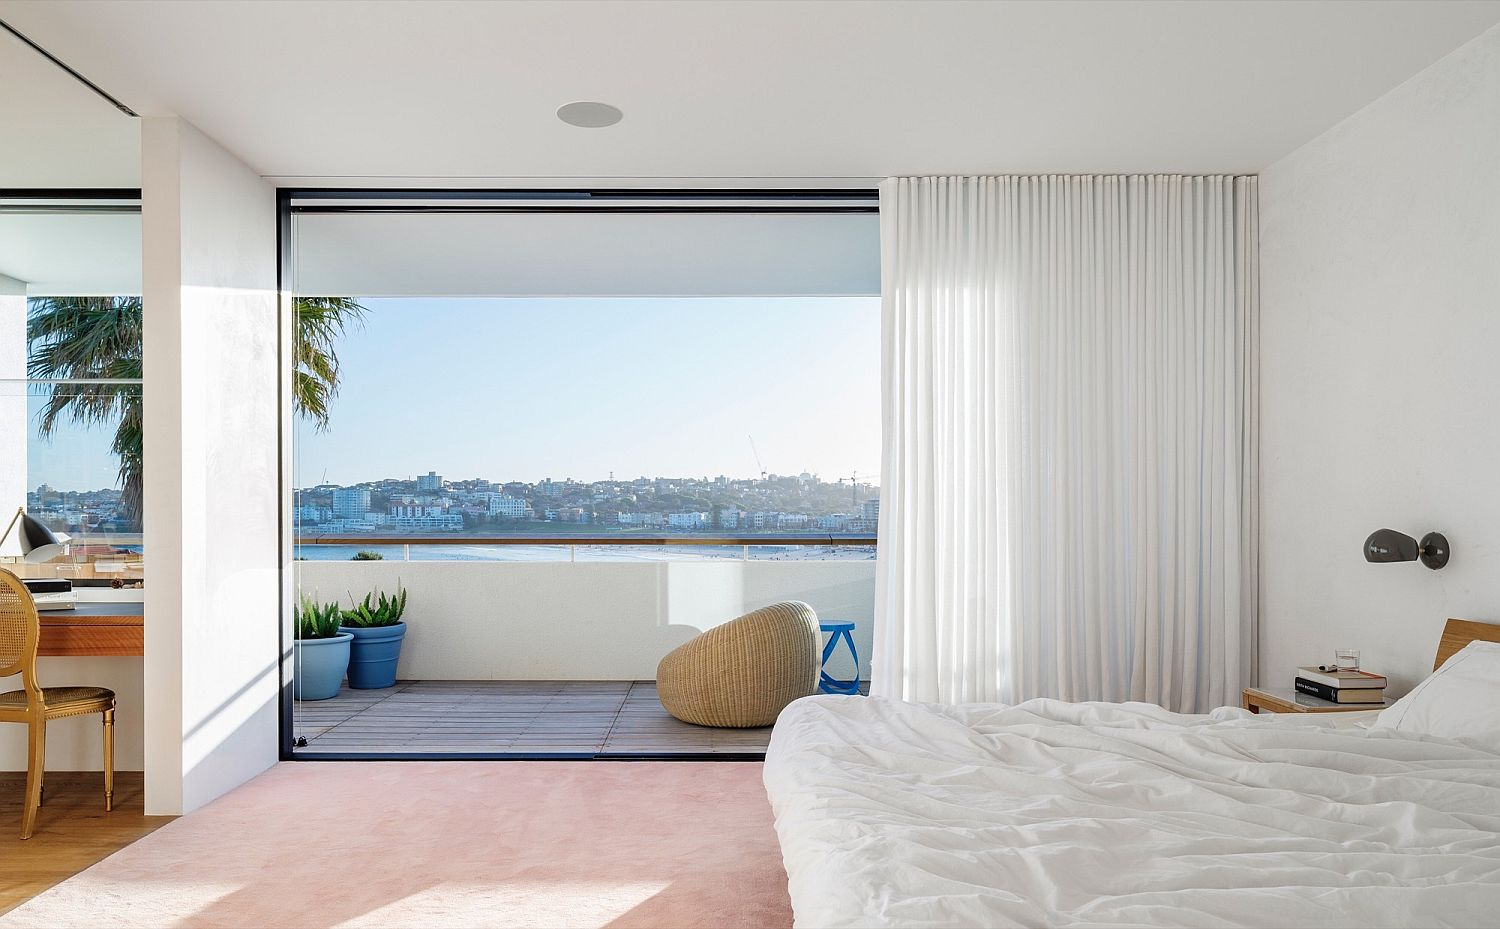 Top level bedroom of the beach house